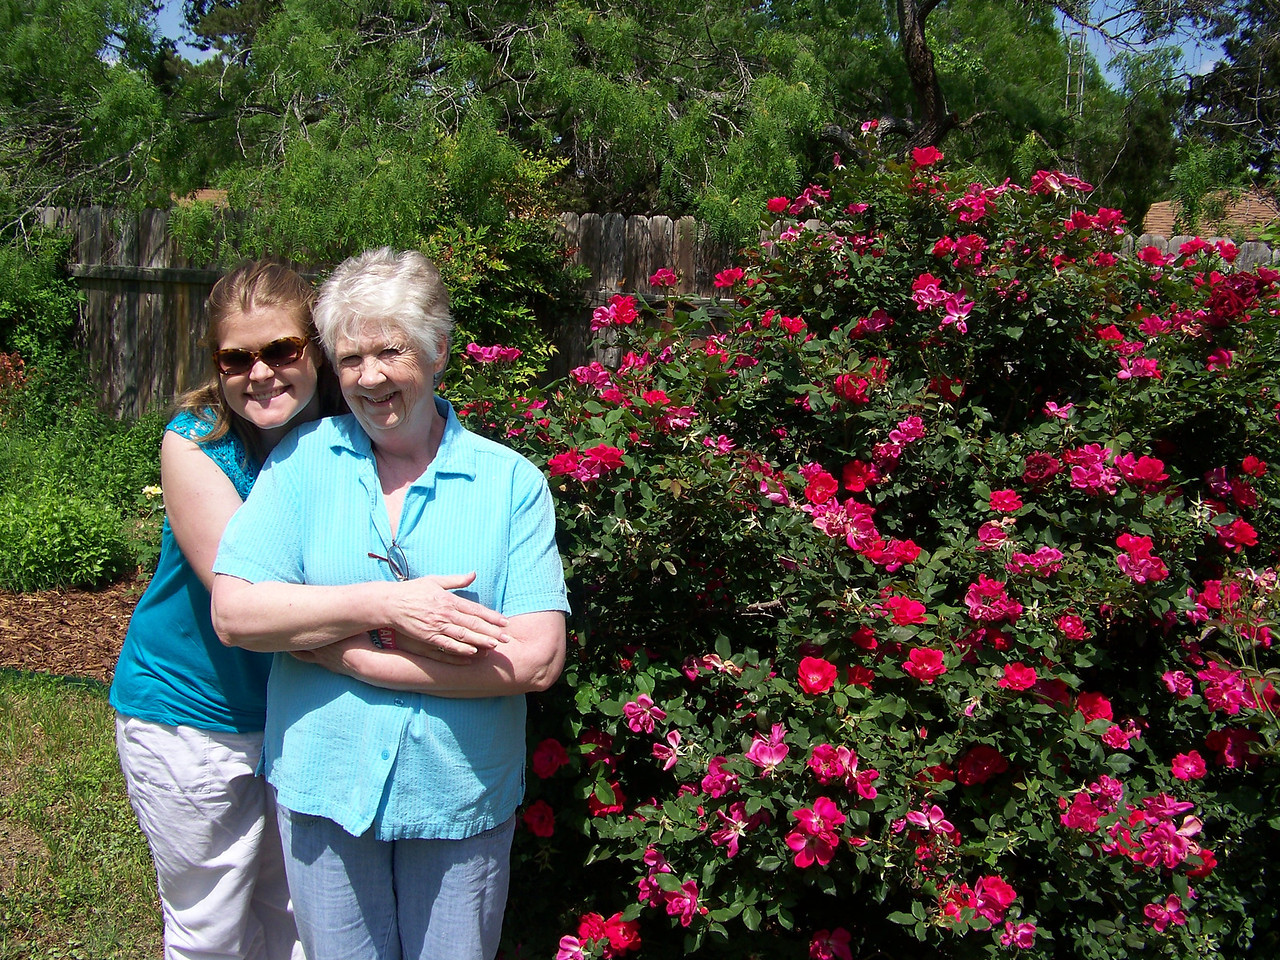 Sheri and my niece Jenna pose in Sheri's backyard on Easter Sunday 2012.  Sheri hosted a wonderful Easter dinner for us and several friends from church.  This was the first Easter I spent in Texas since I moved to Seattle in 1988.  I was there because Dad and I left on our Caribbean cruise the next day.